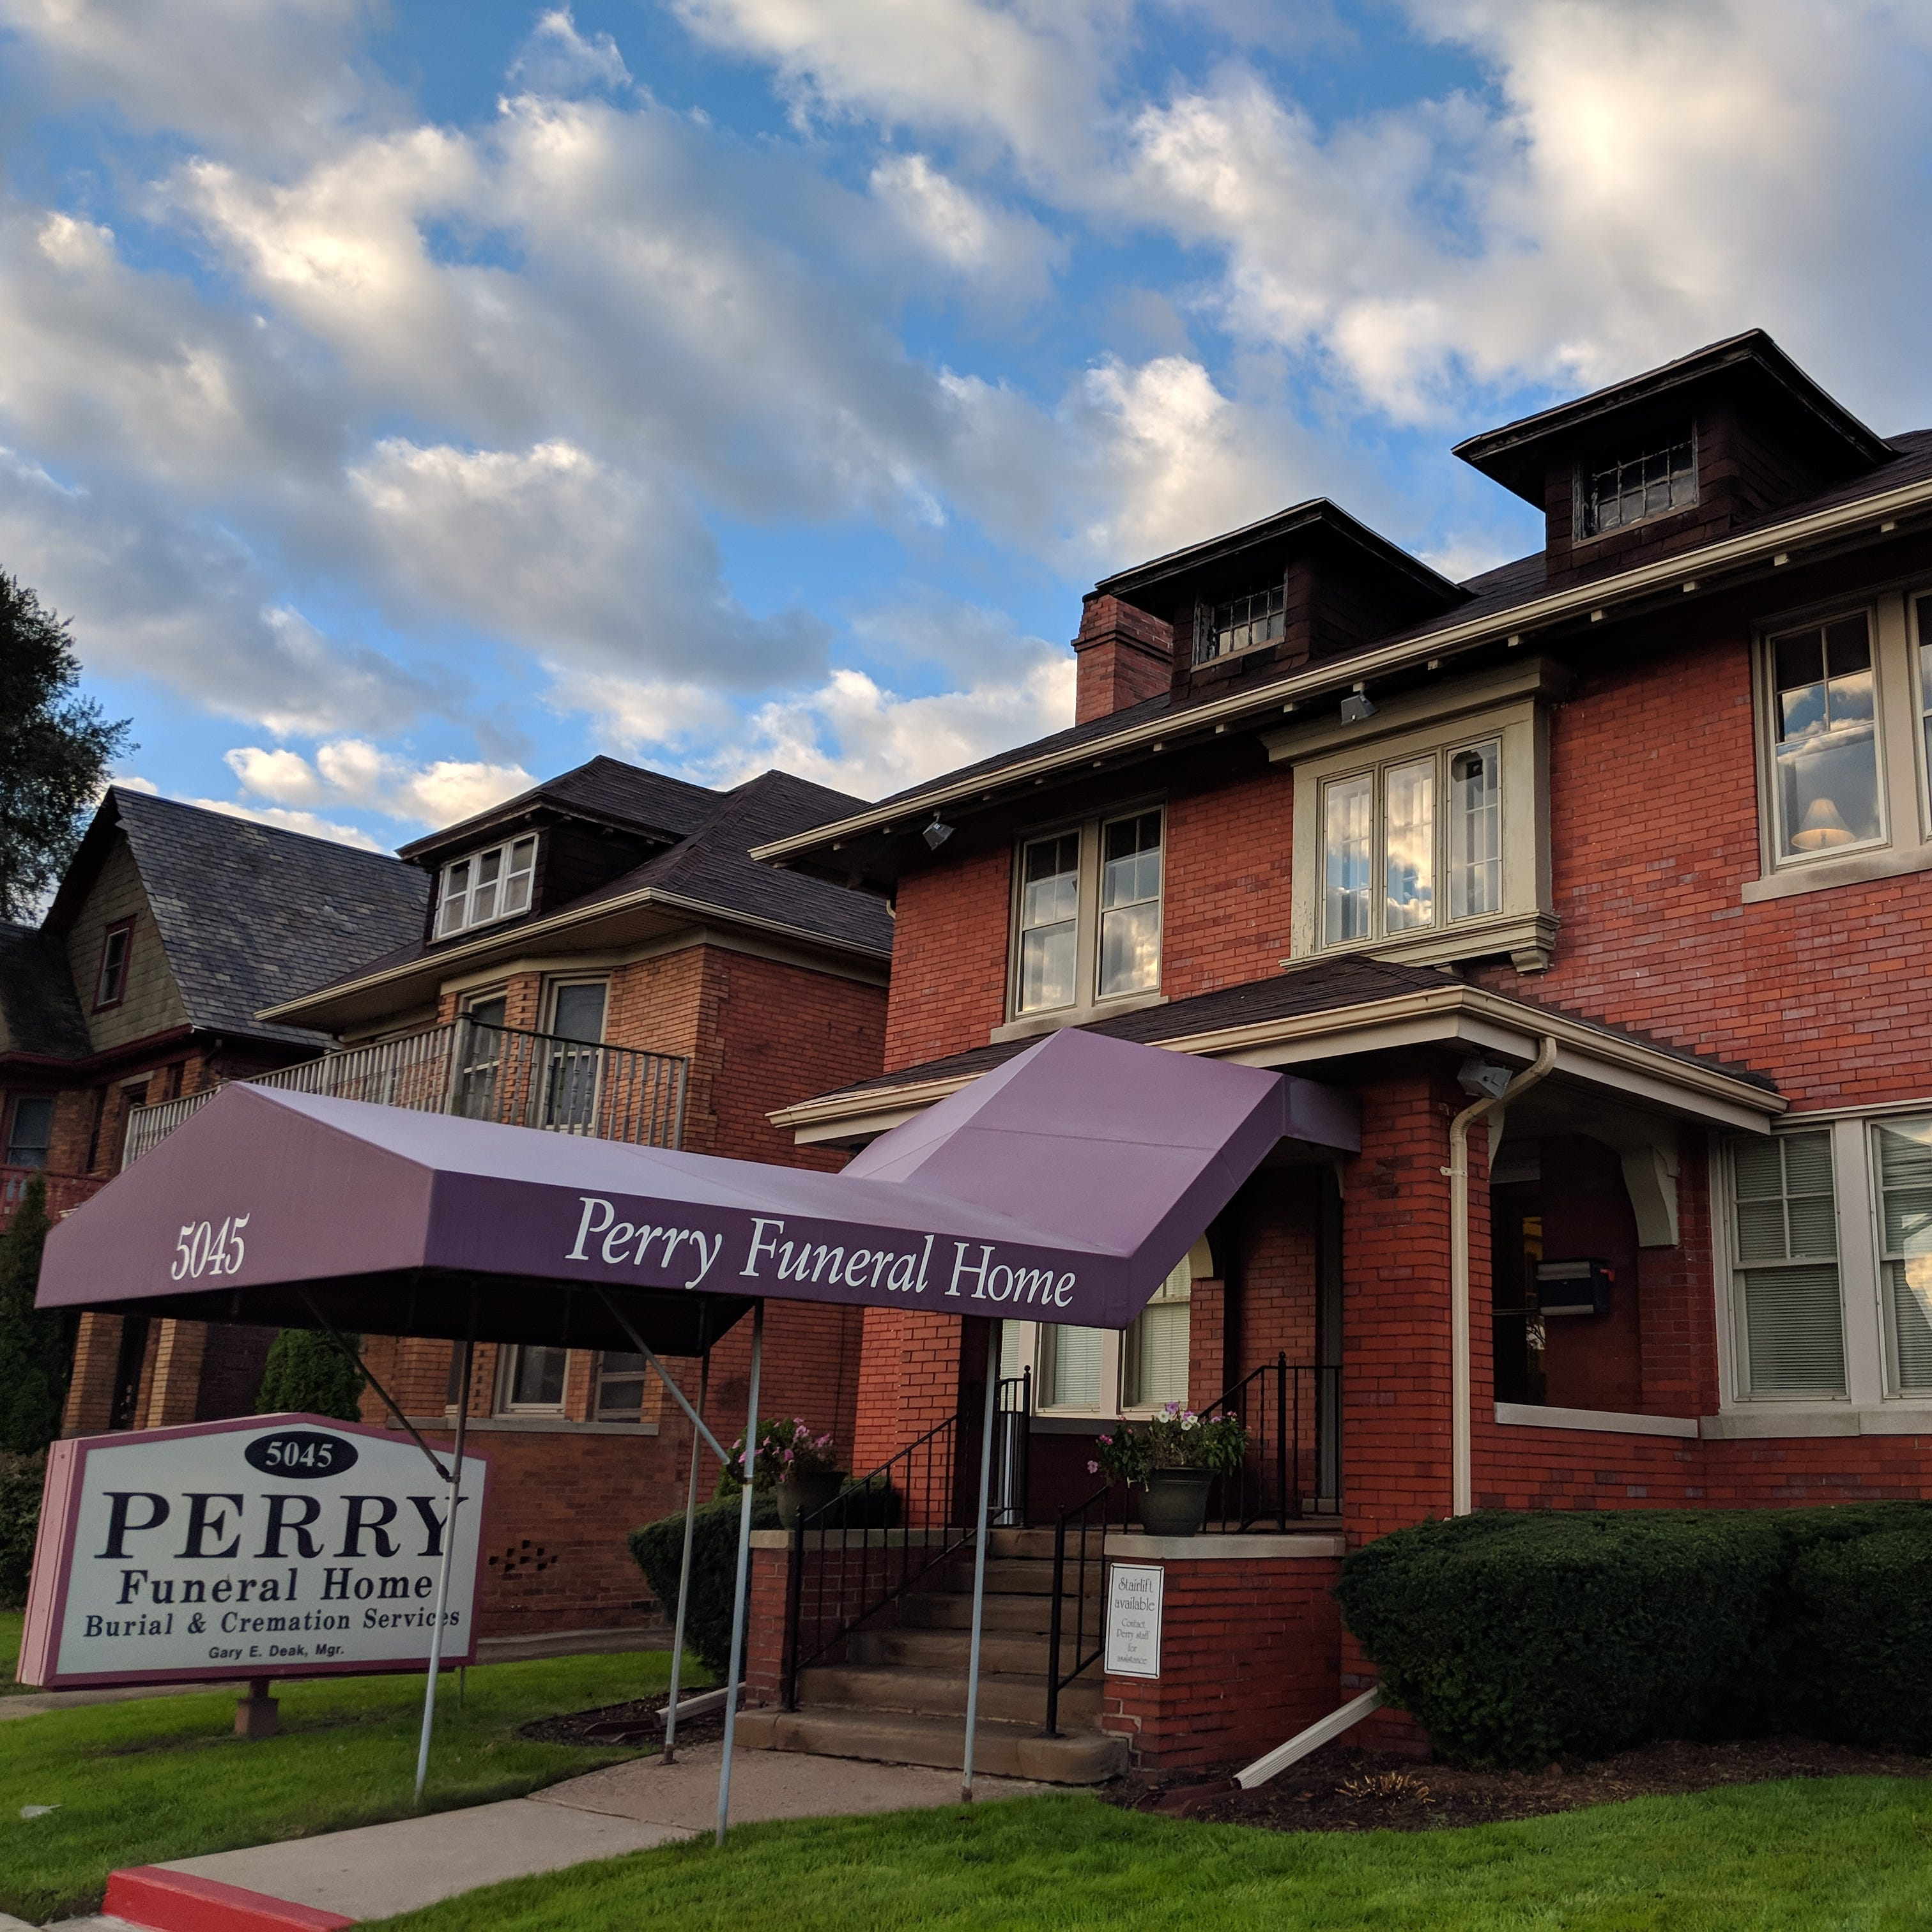 63 remains of fetuses removed from Perry Funeral Home in Detroit